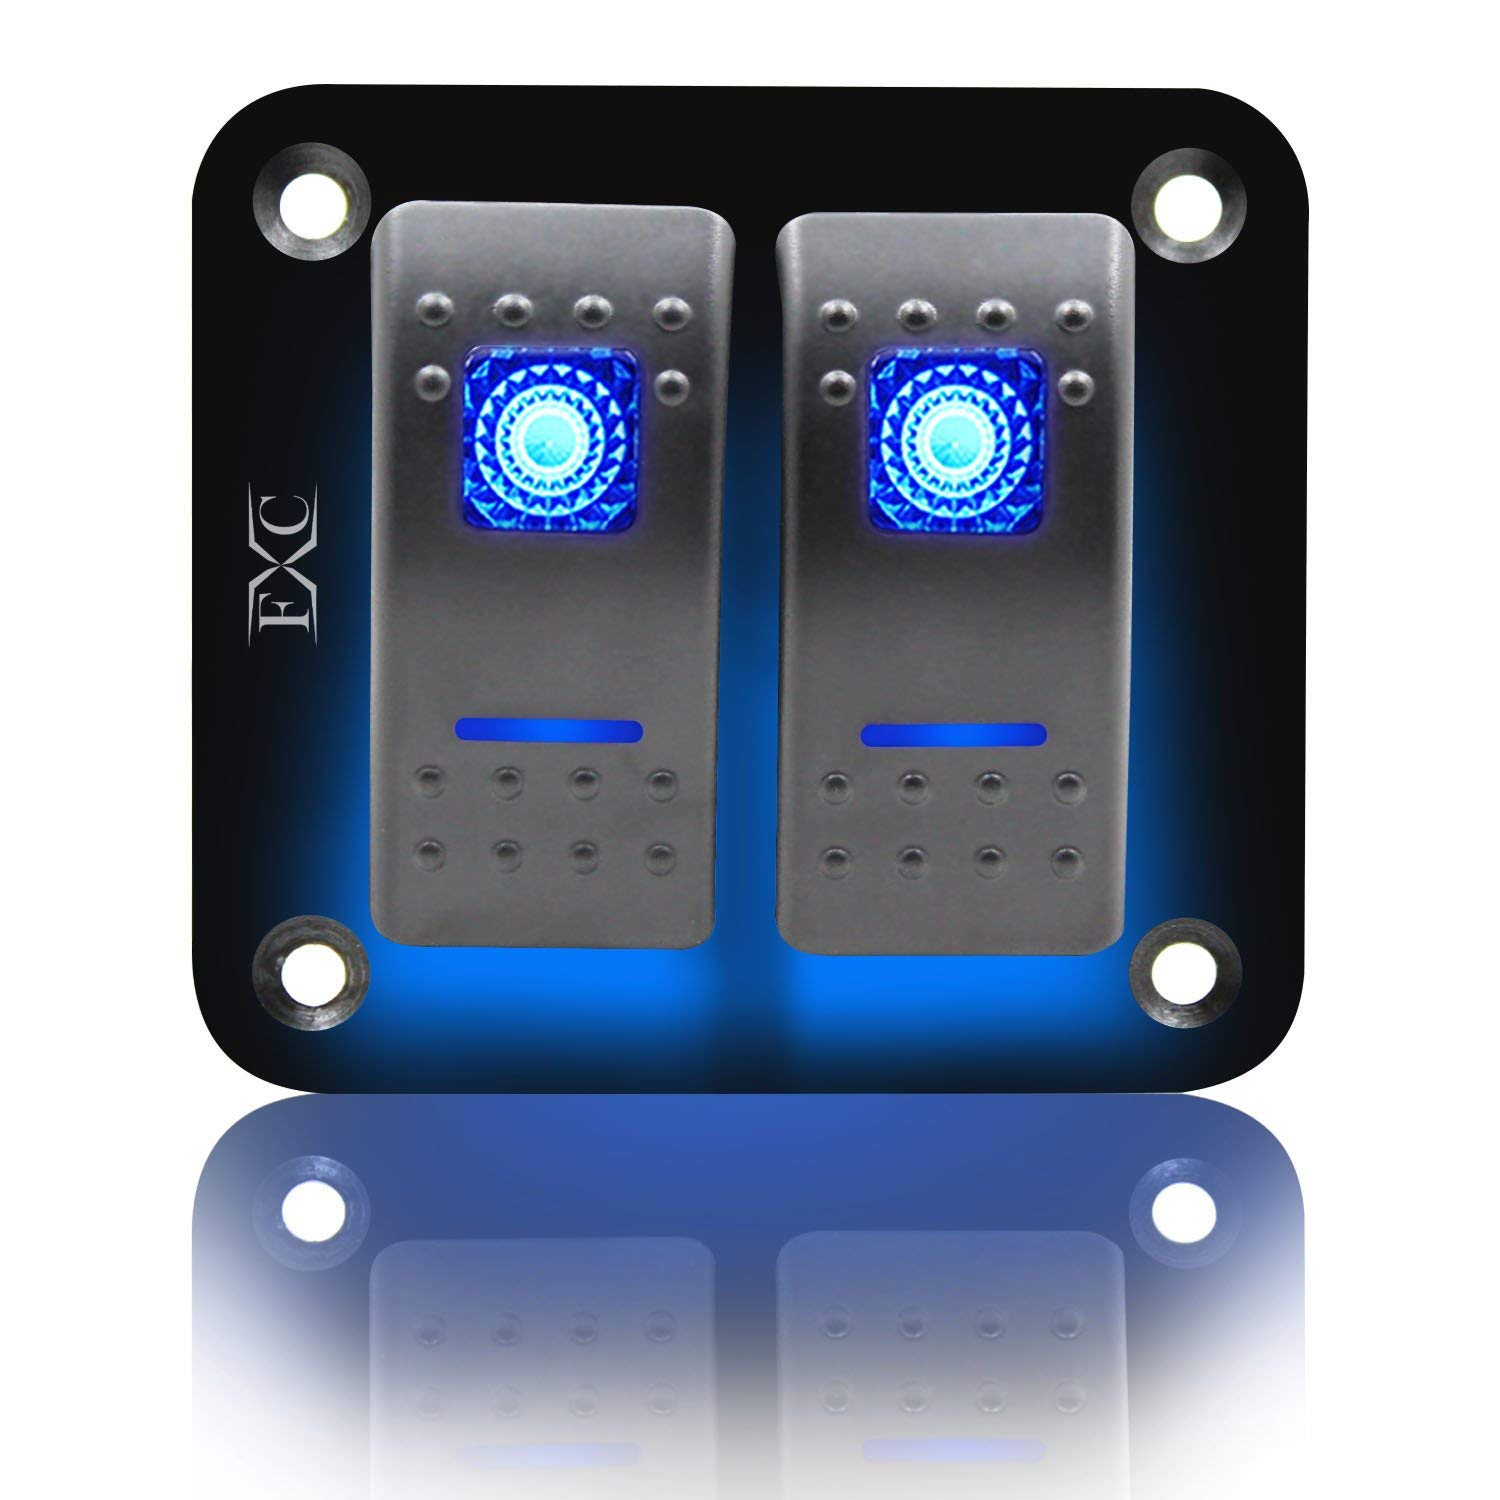 FXC Rocker Switch Aluminum Panel 2 Gang Toggle Switches Dash 5 Pin ON/OFF 2 LED Backlit for Boat Car Marine Blue